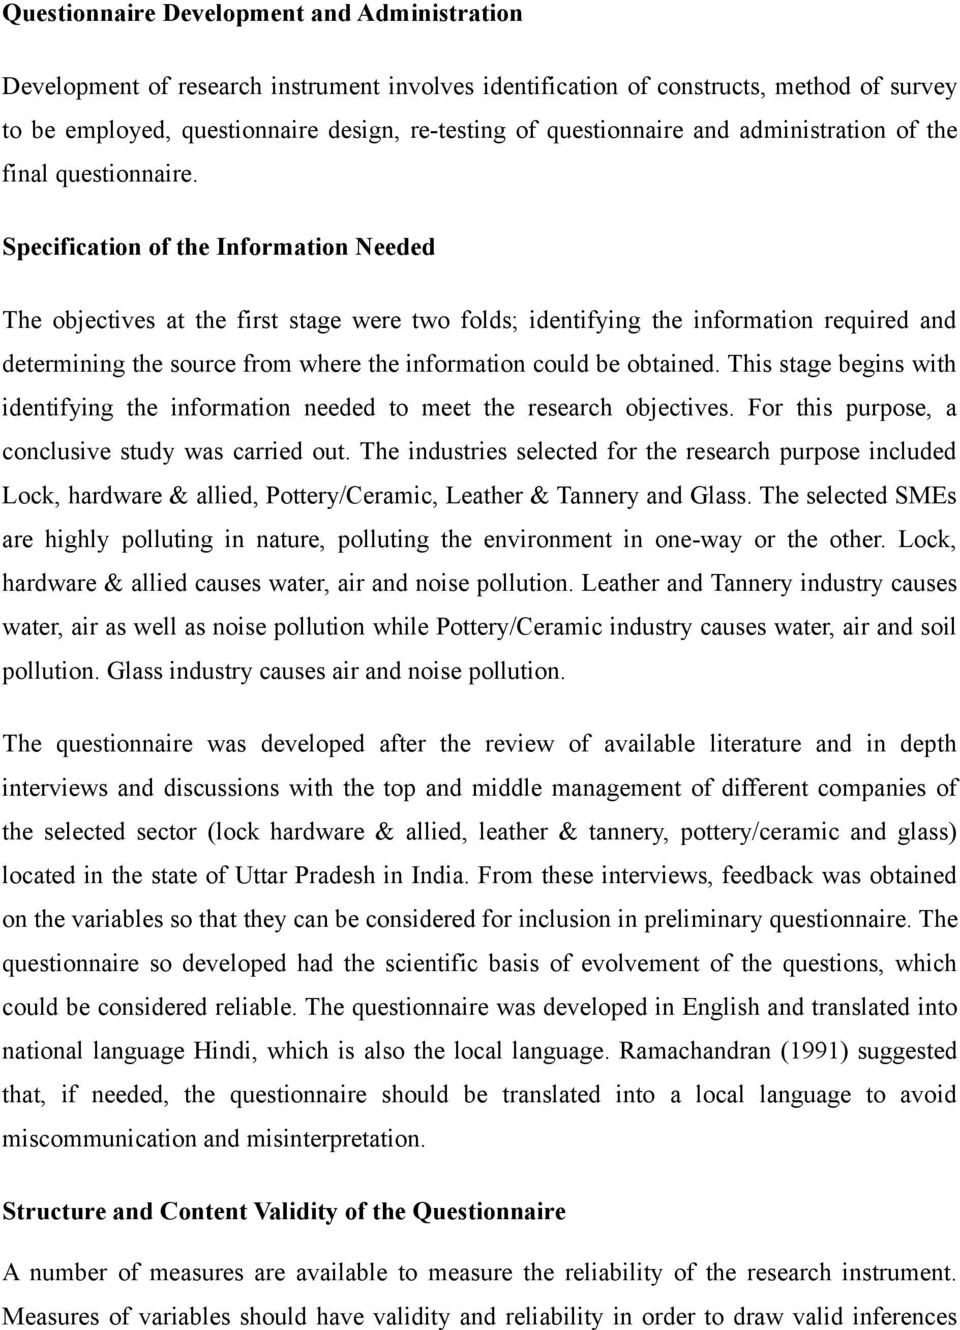 Specification of the Information Needed The objectives at the first stage were two folds; identifying the information required and determining the source from where the information could be obtained.